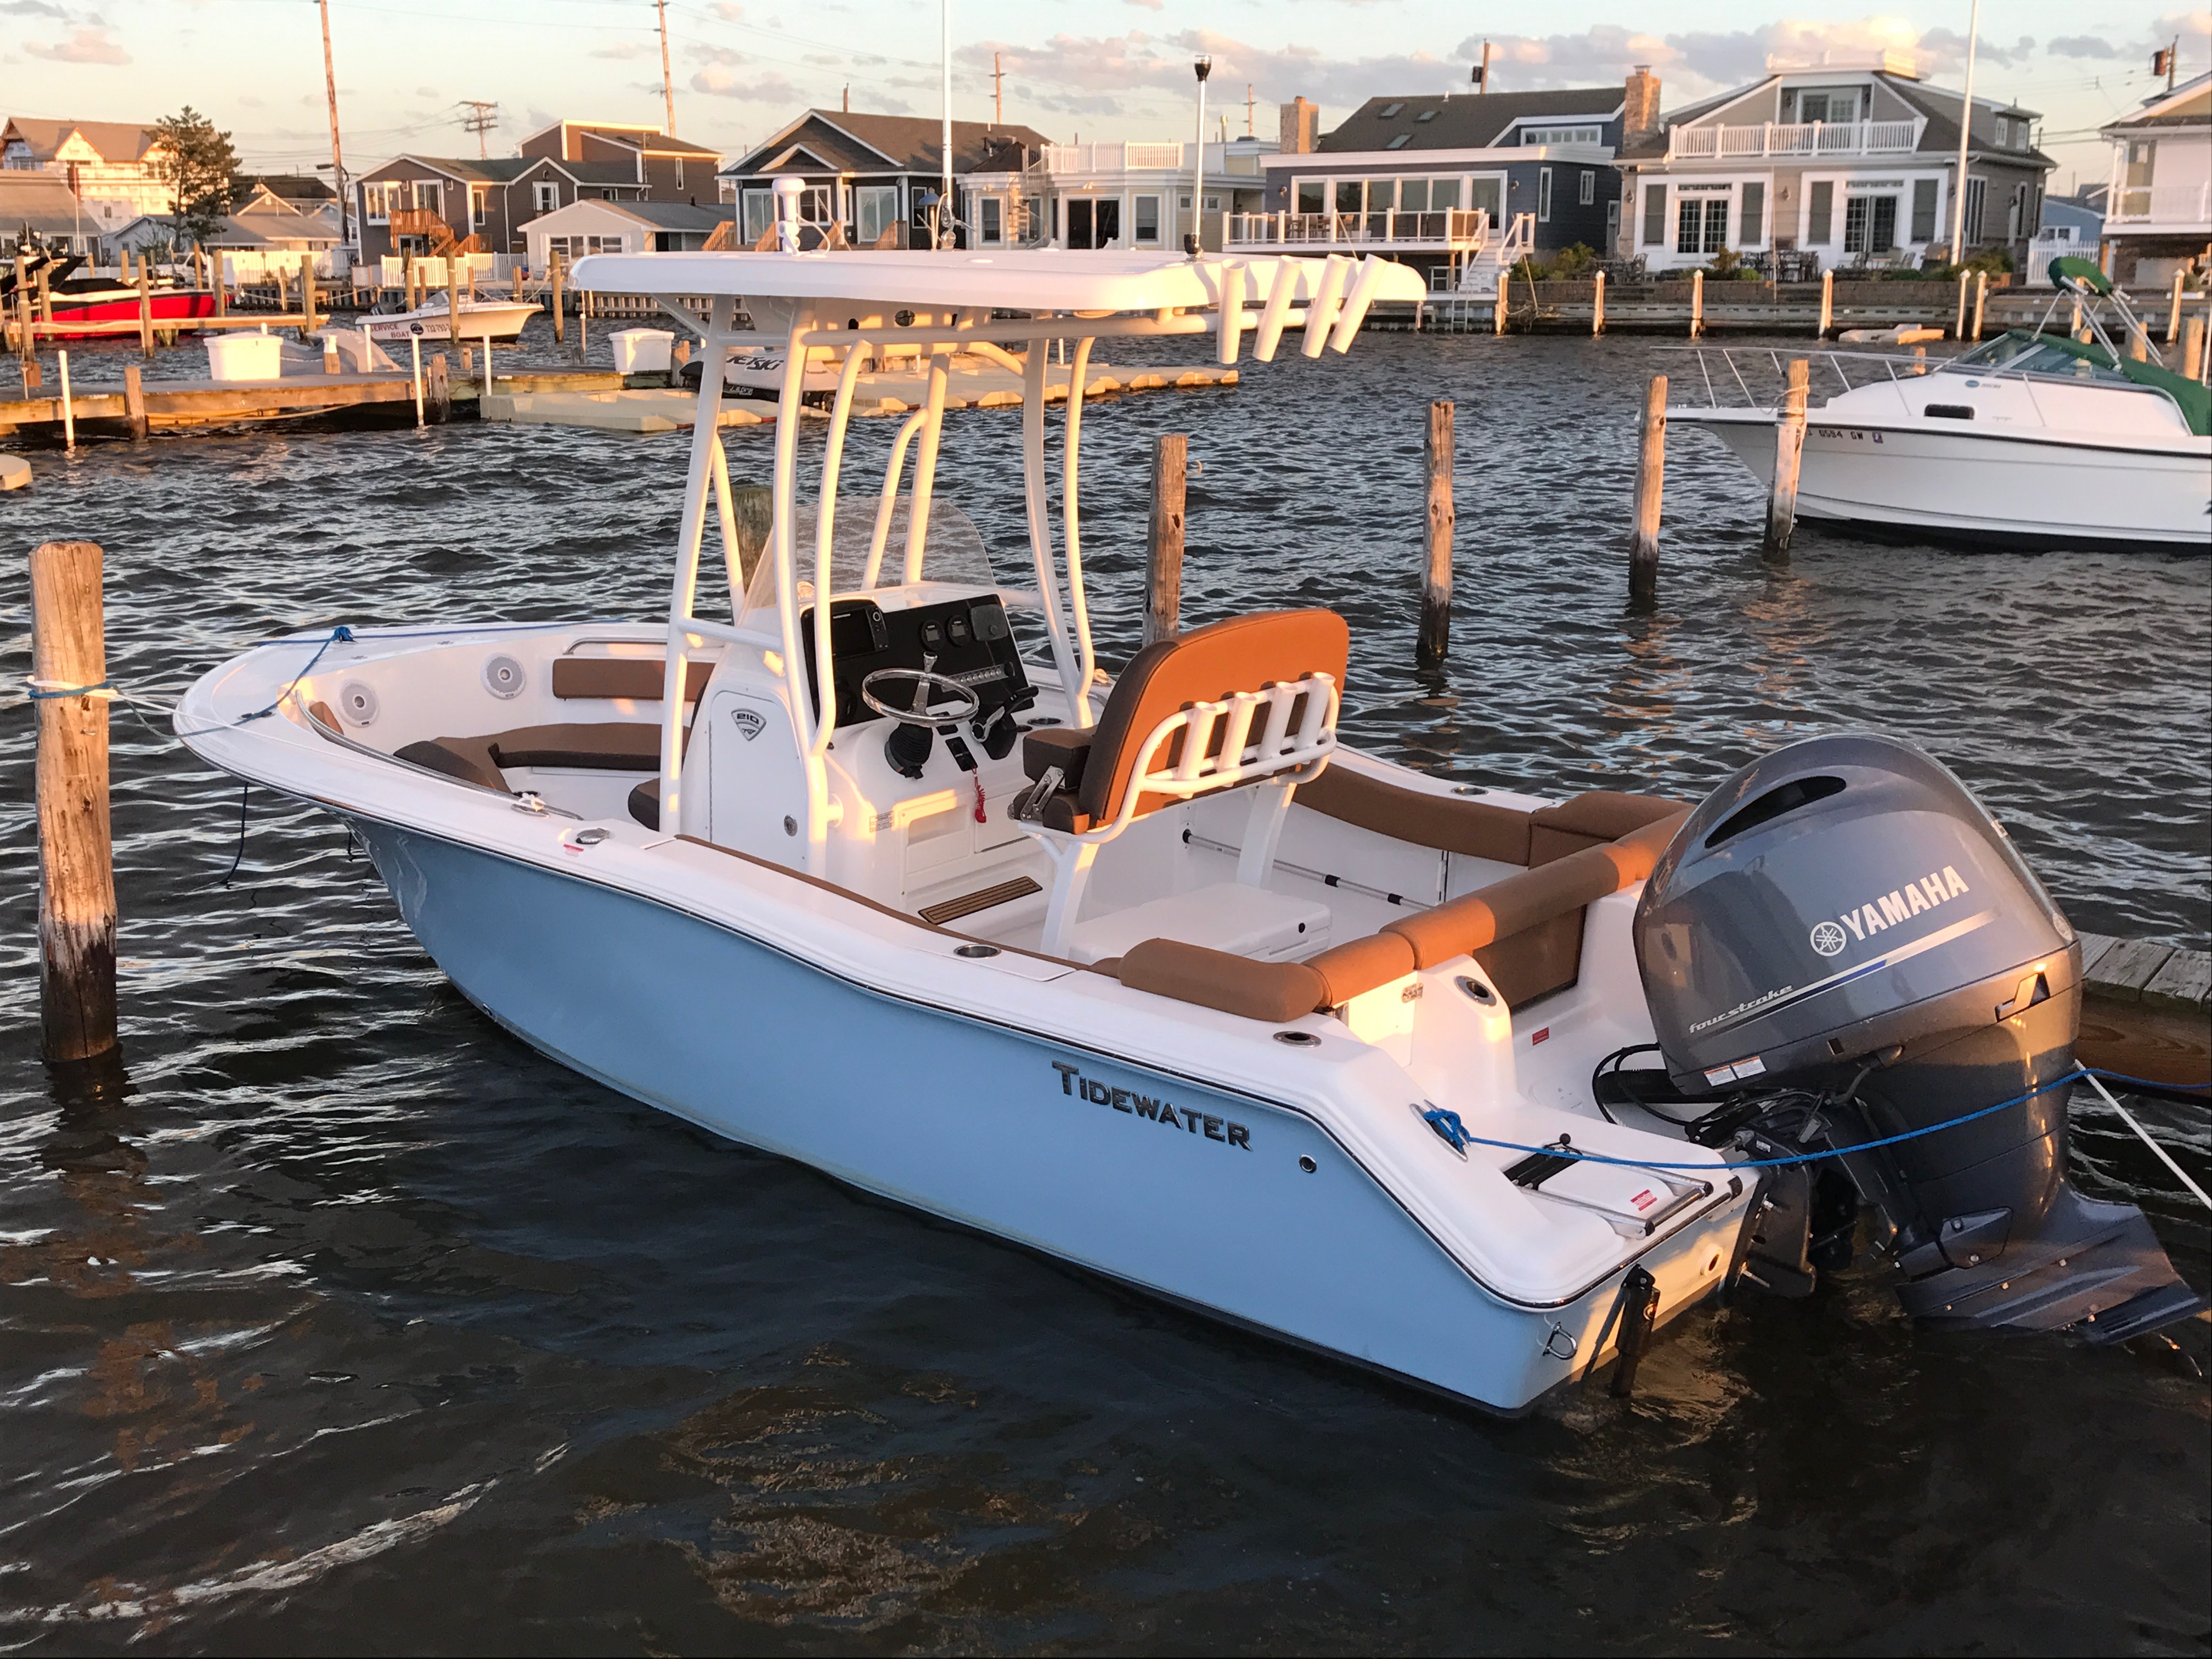 Need opinions about Nautic Star Boats - The Hull Truth - Boating and on